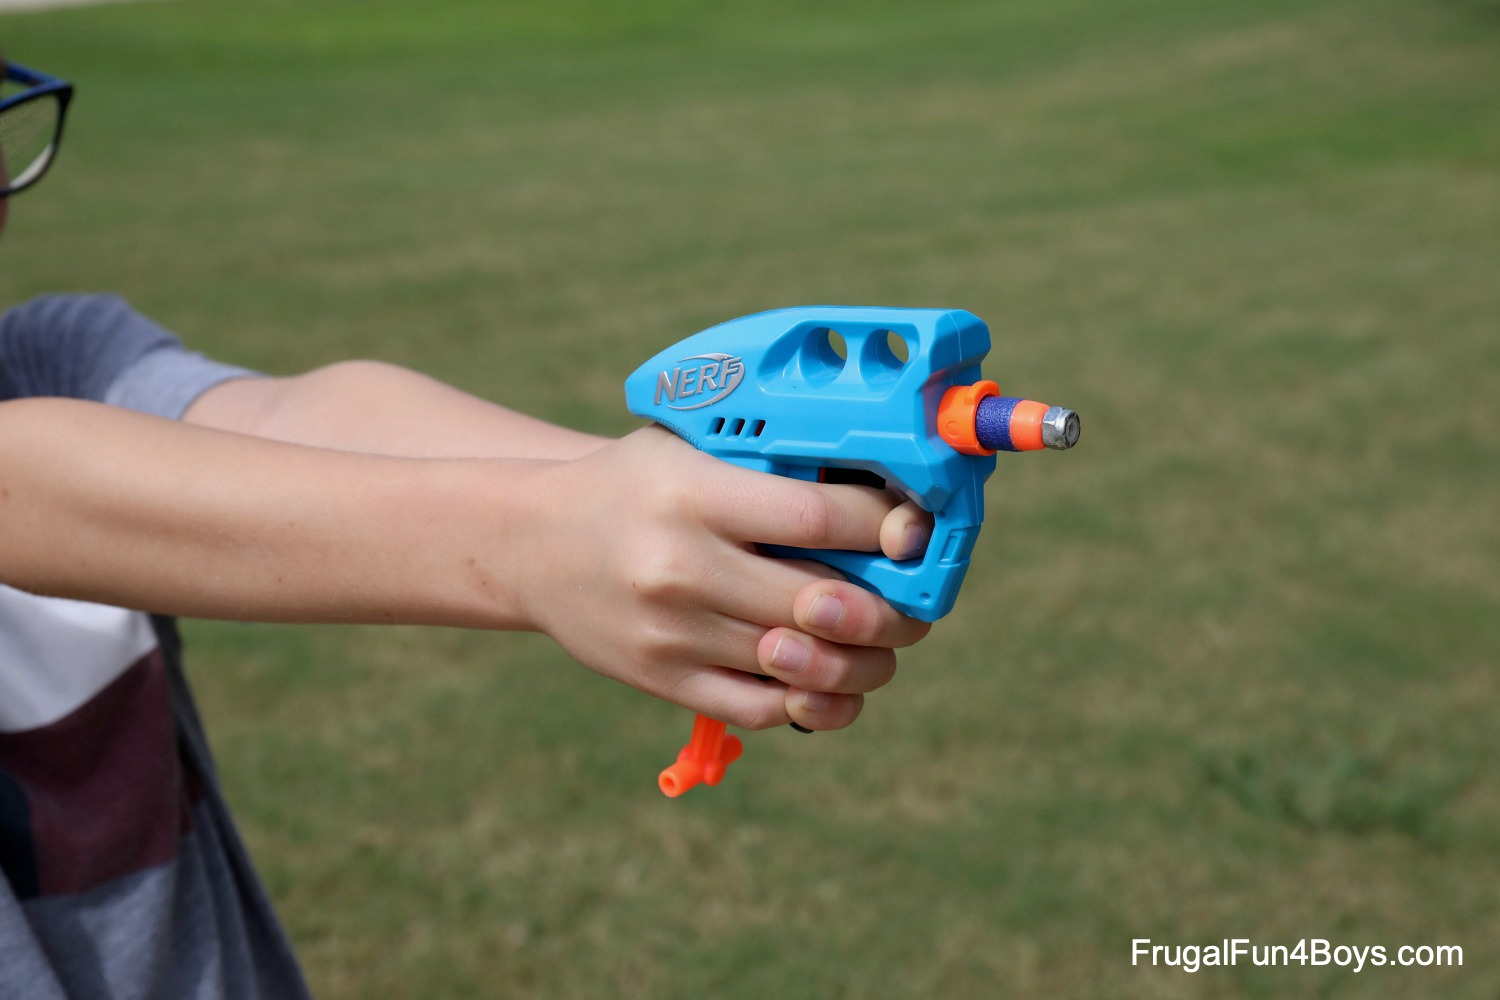 Nerf gun science experiment